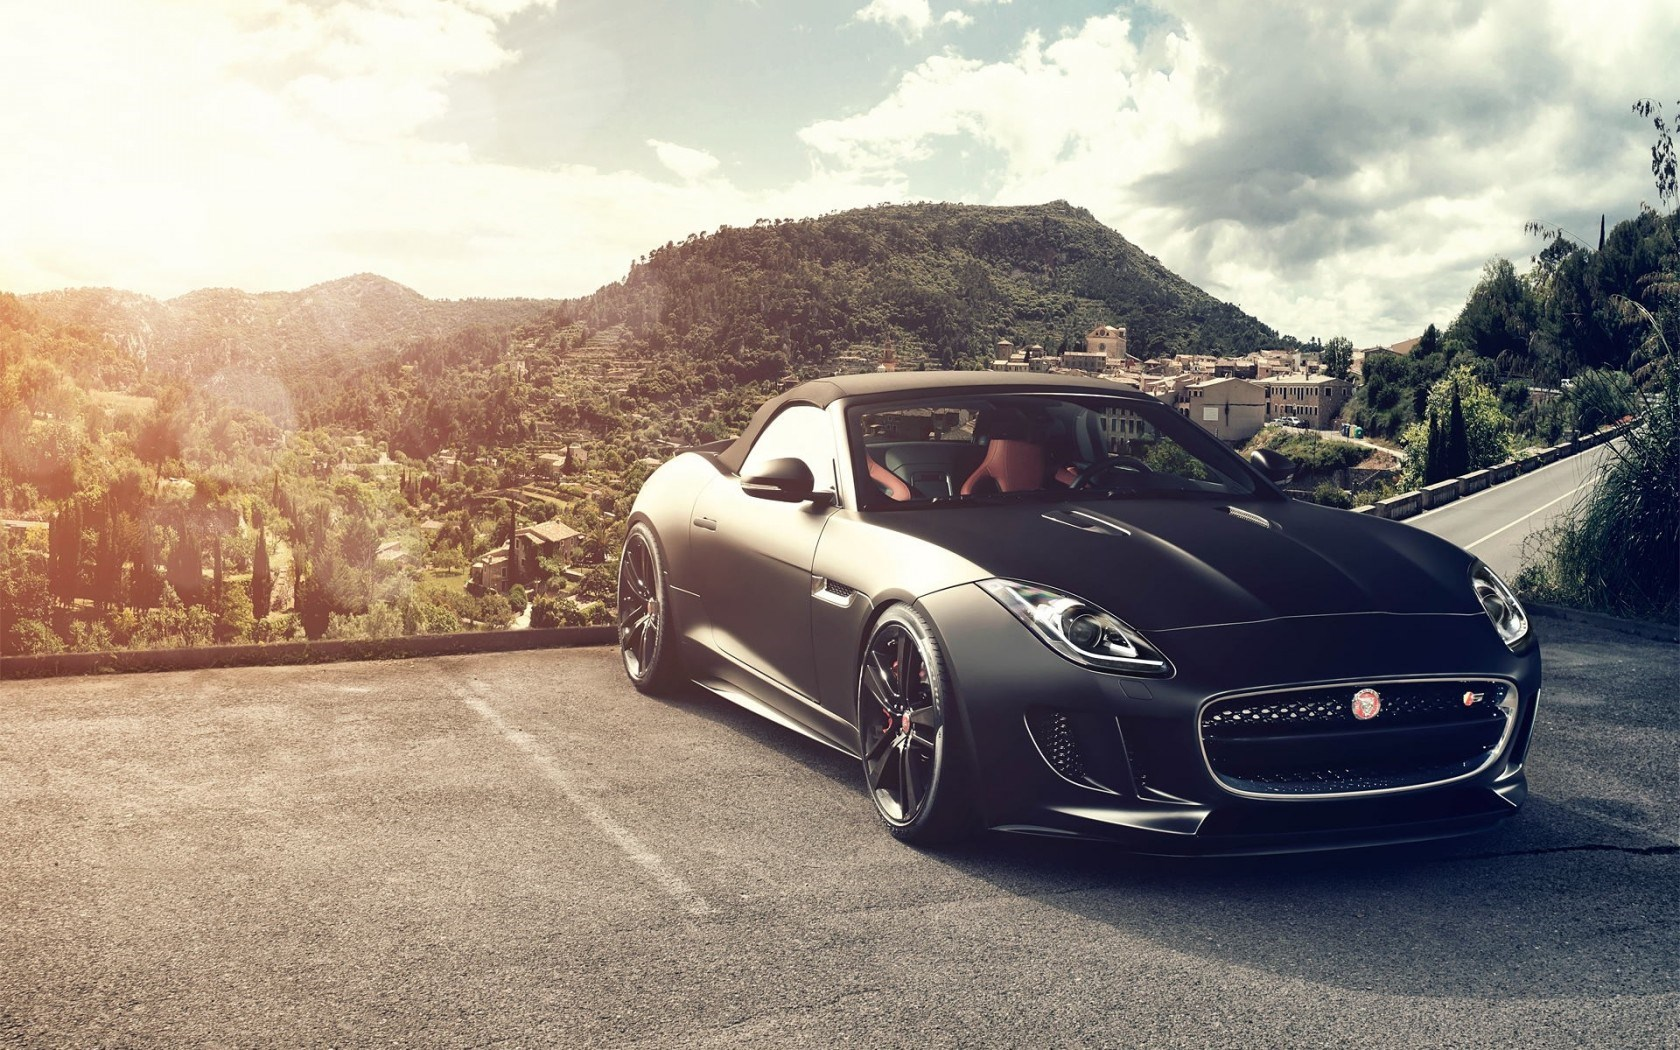 Free Download Jaguar F Type R Wallpaper 1680x1050 For Your